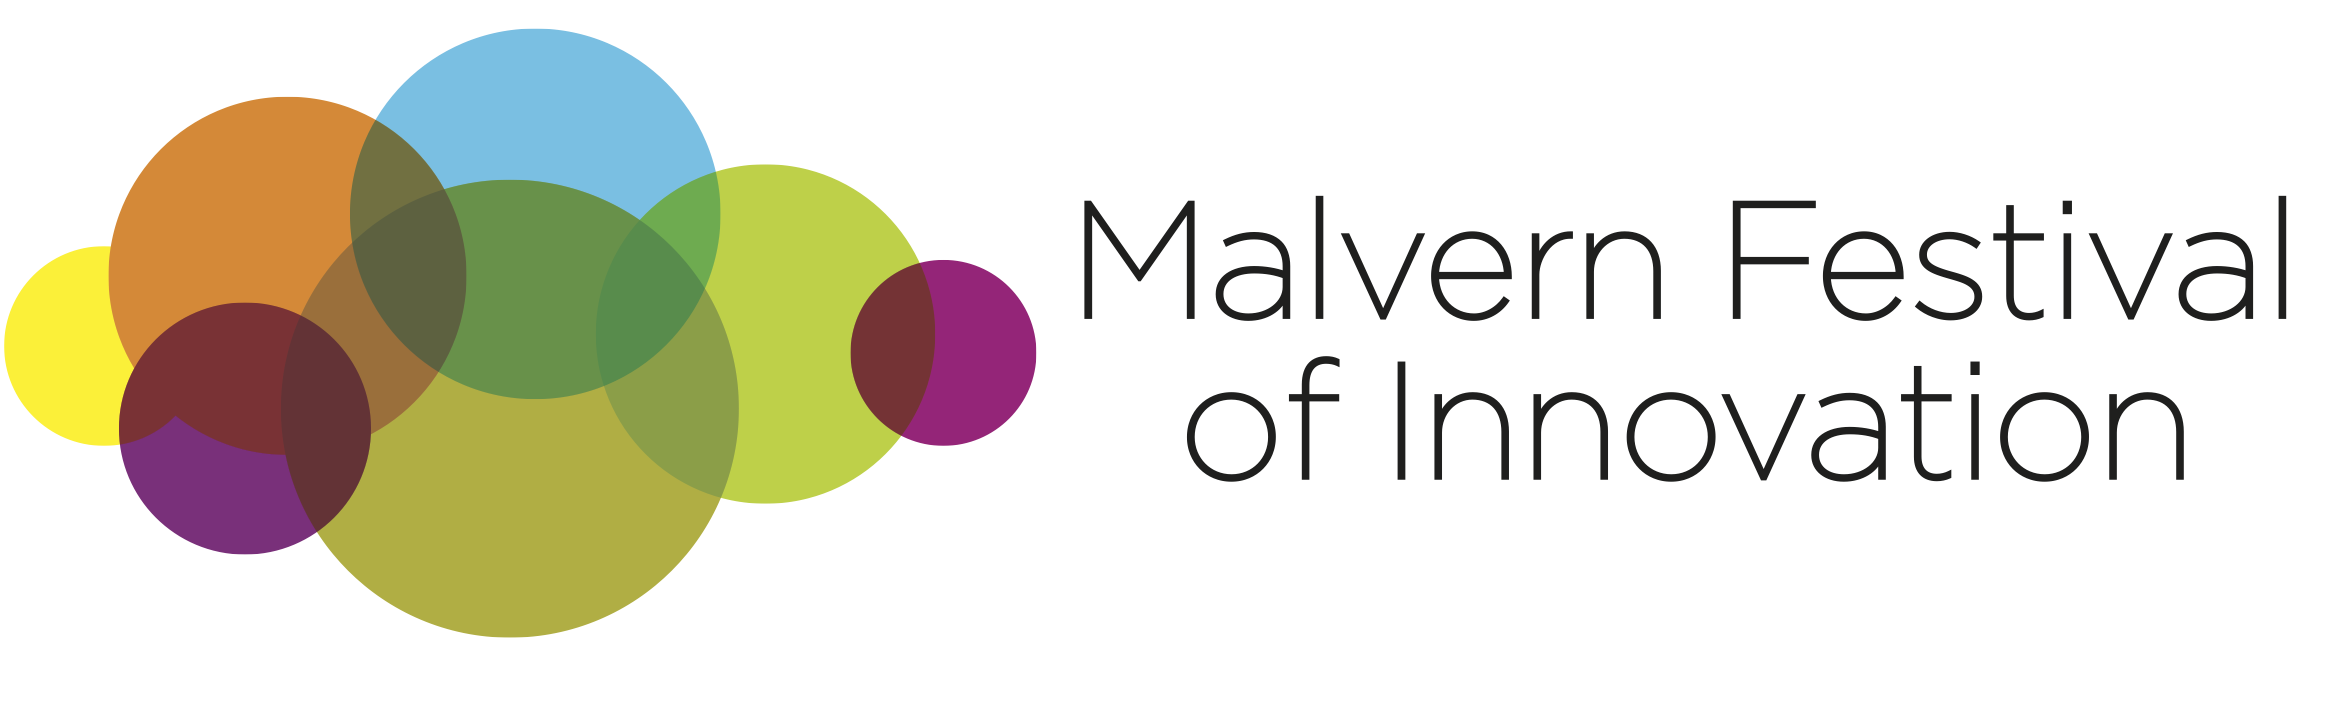 Malvern Festival of Innovation | Environment & Sustainability